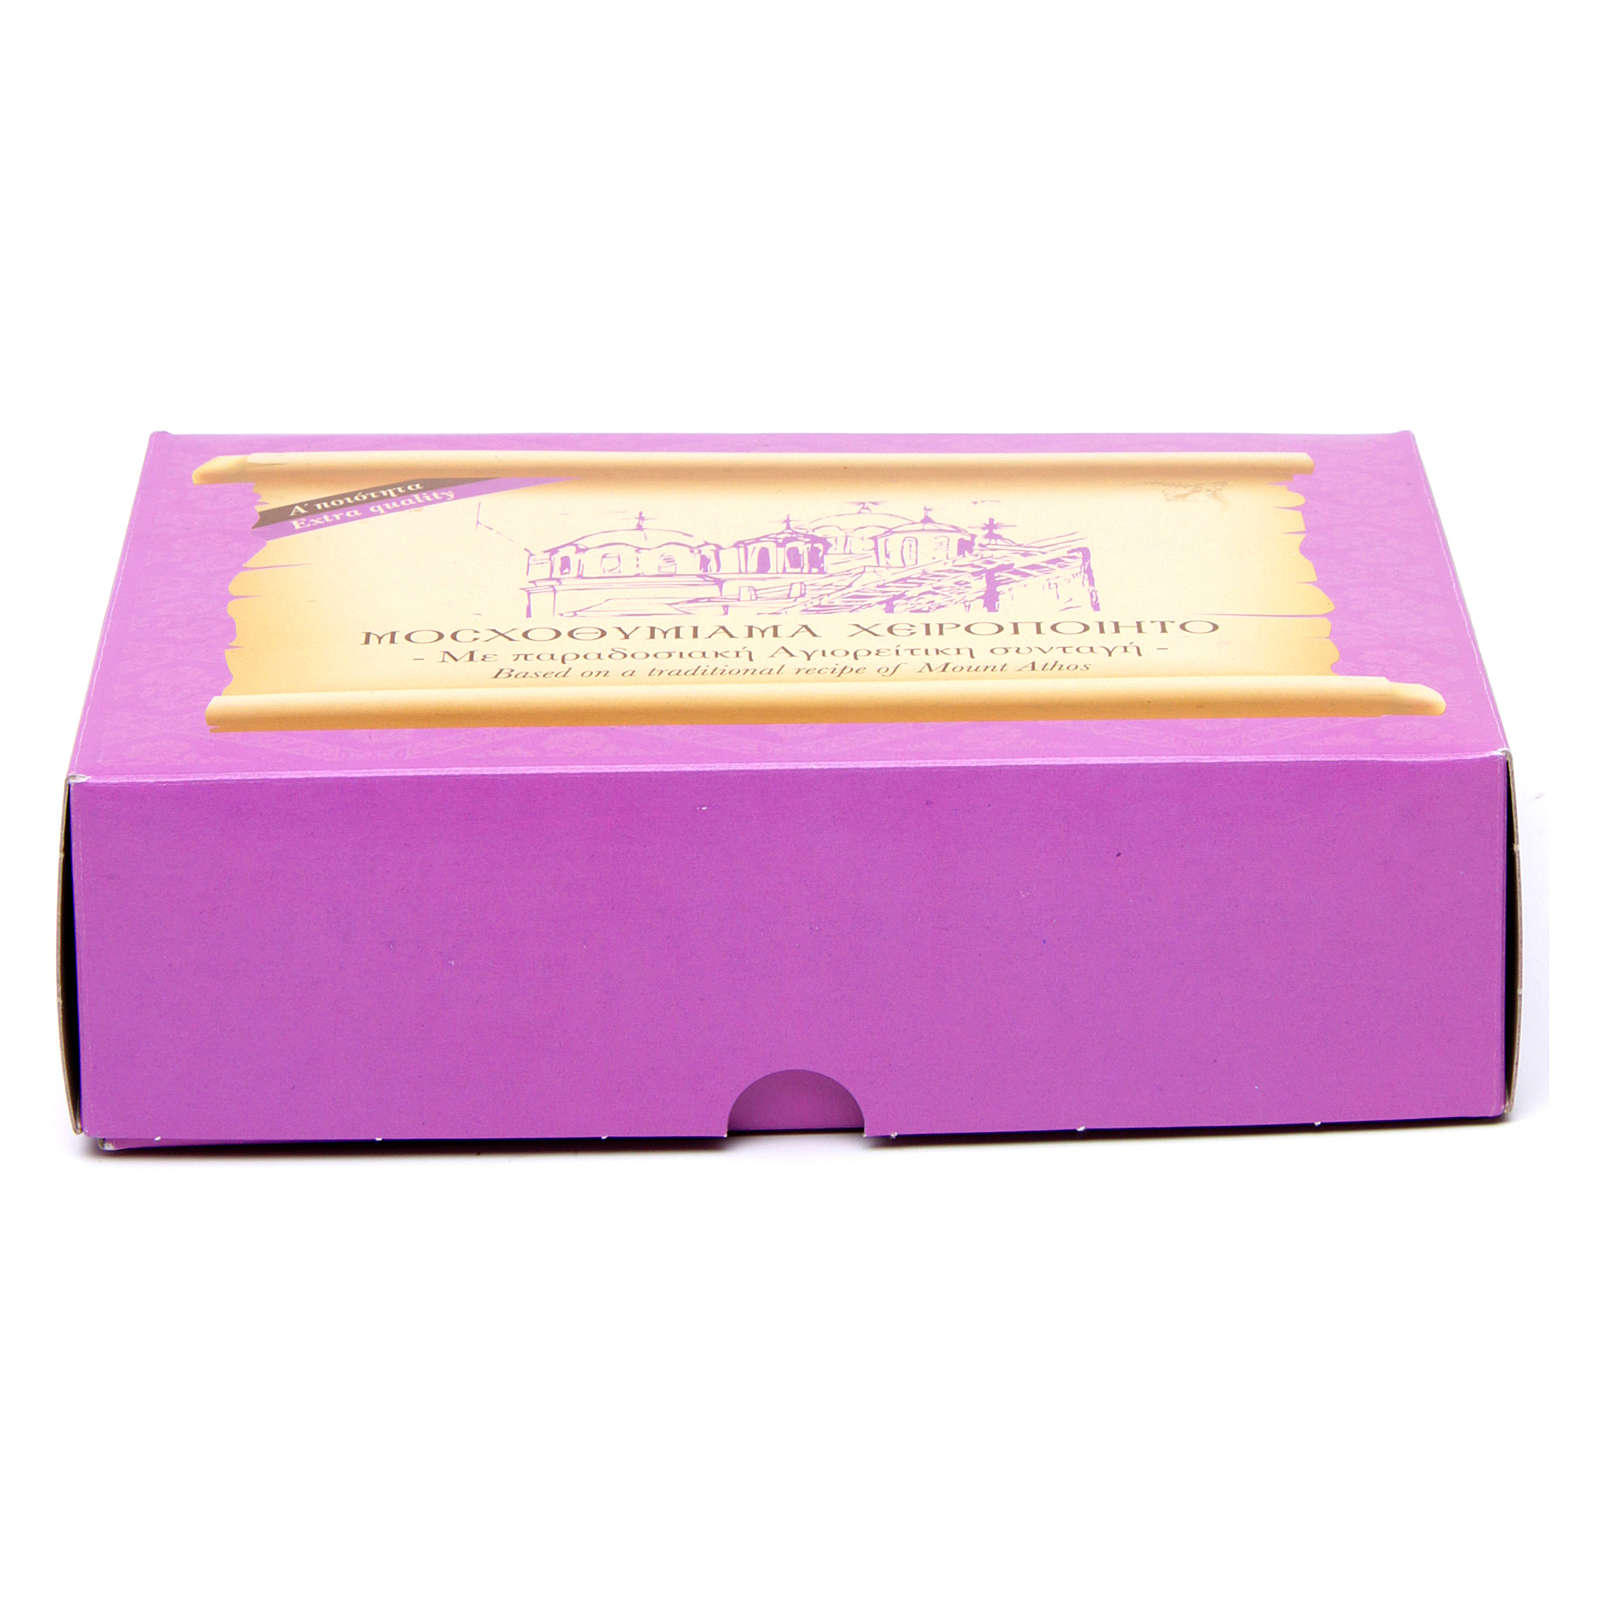 Hyacinth-scented Greek incense 1 kg 3